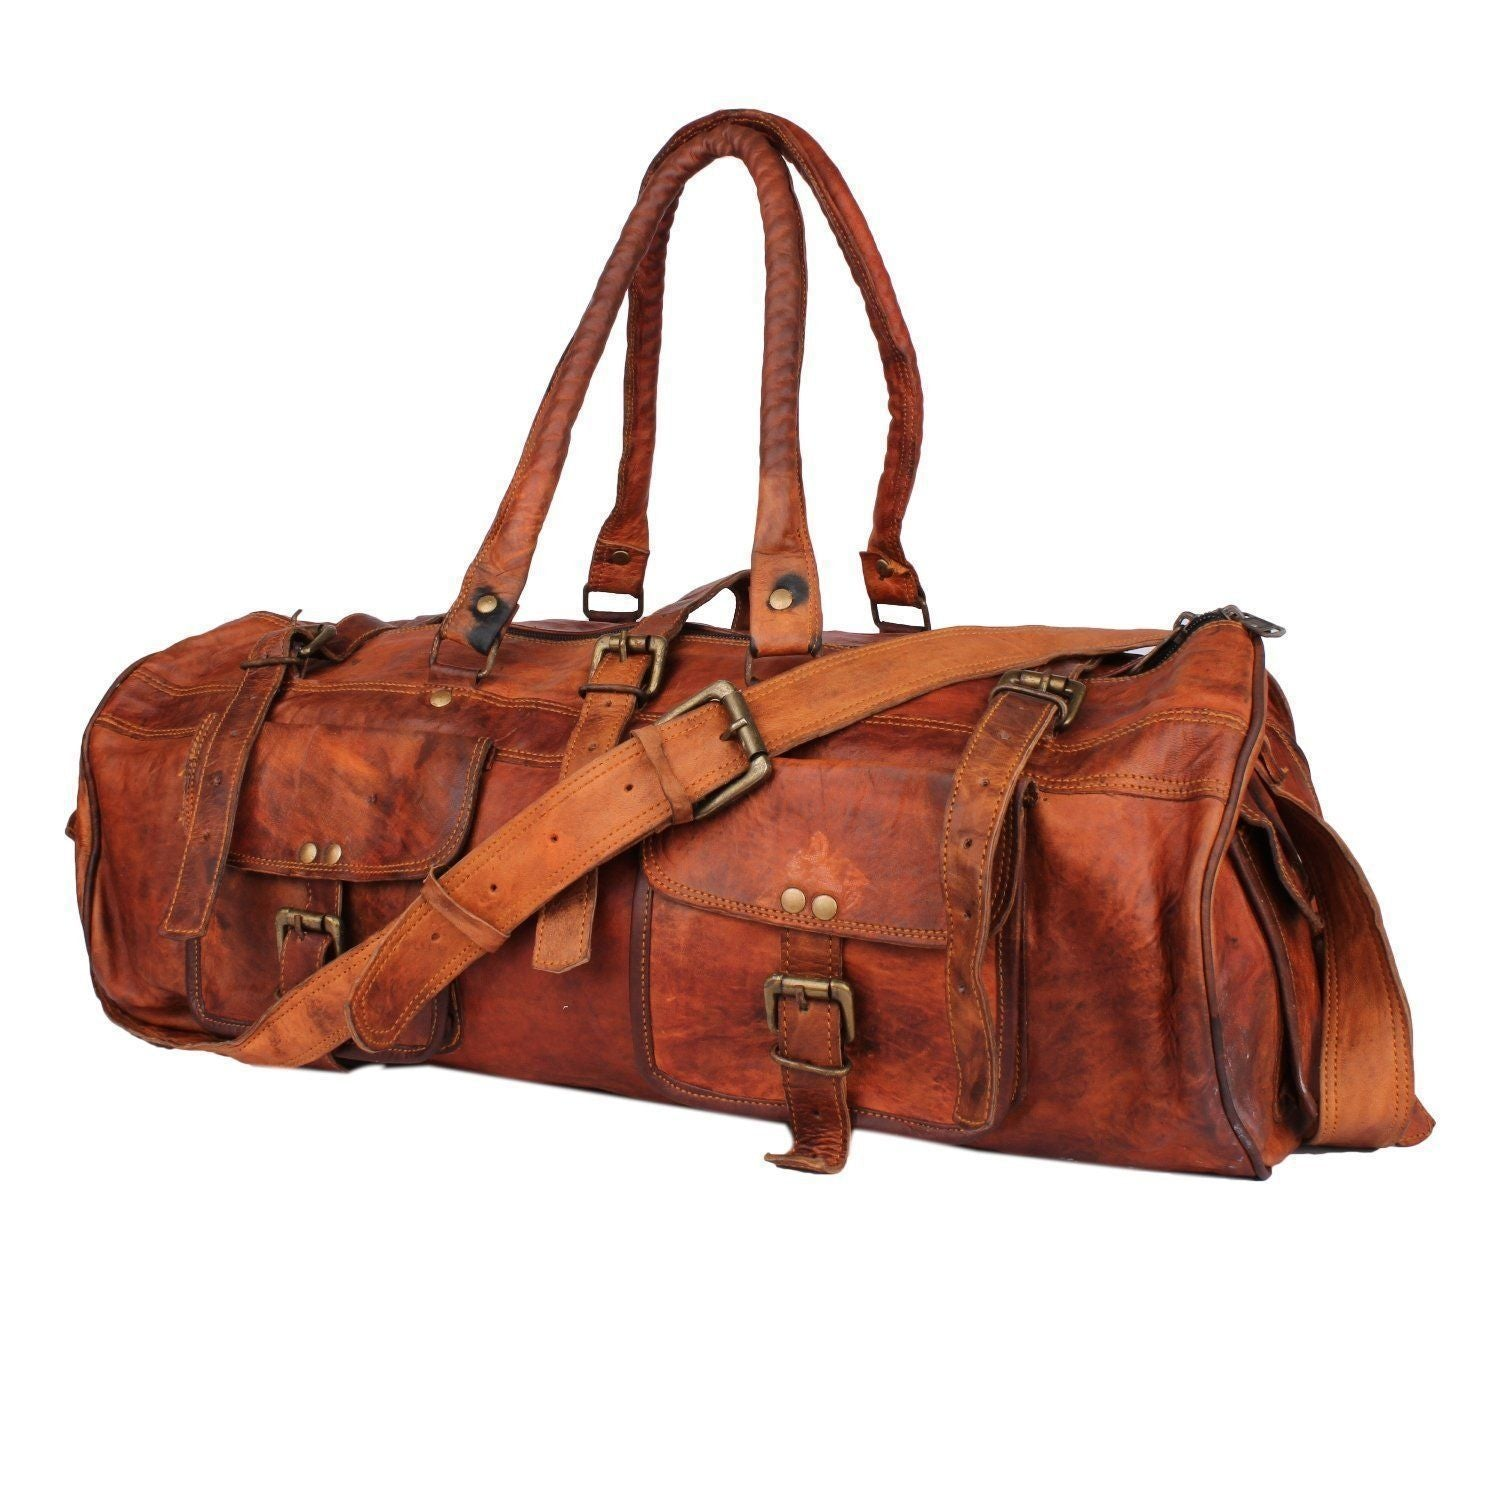 Leather - IN-INDIA Hard Bound Heavy Duty Exclusive Pure Leather 2 Pocket Duffel Bag - 22 Inches